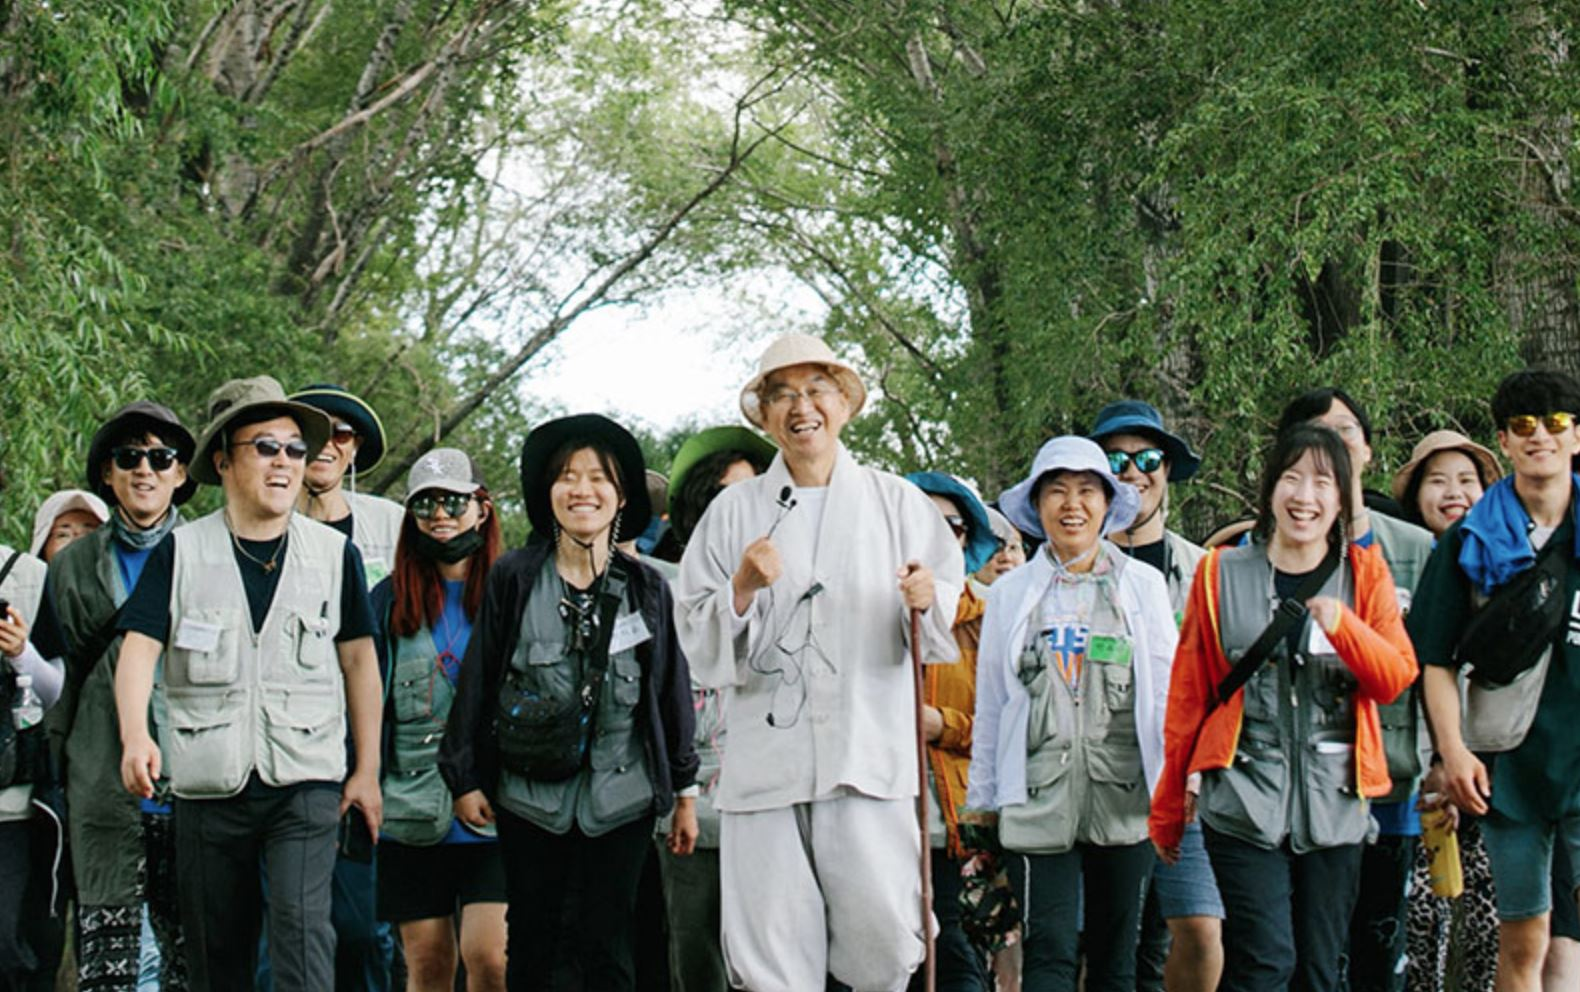 Pomnyun Sunim and members of Jungto Society walking together